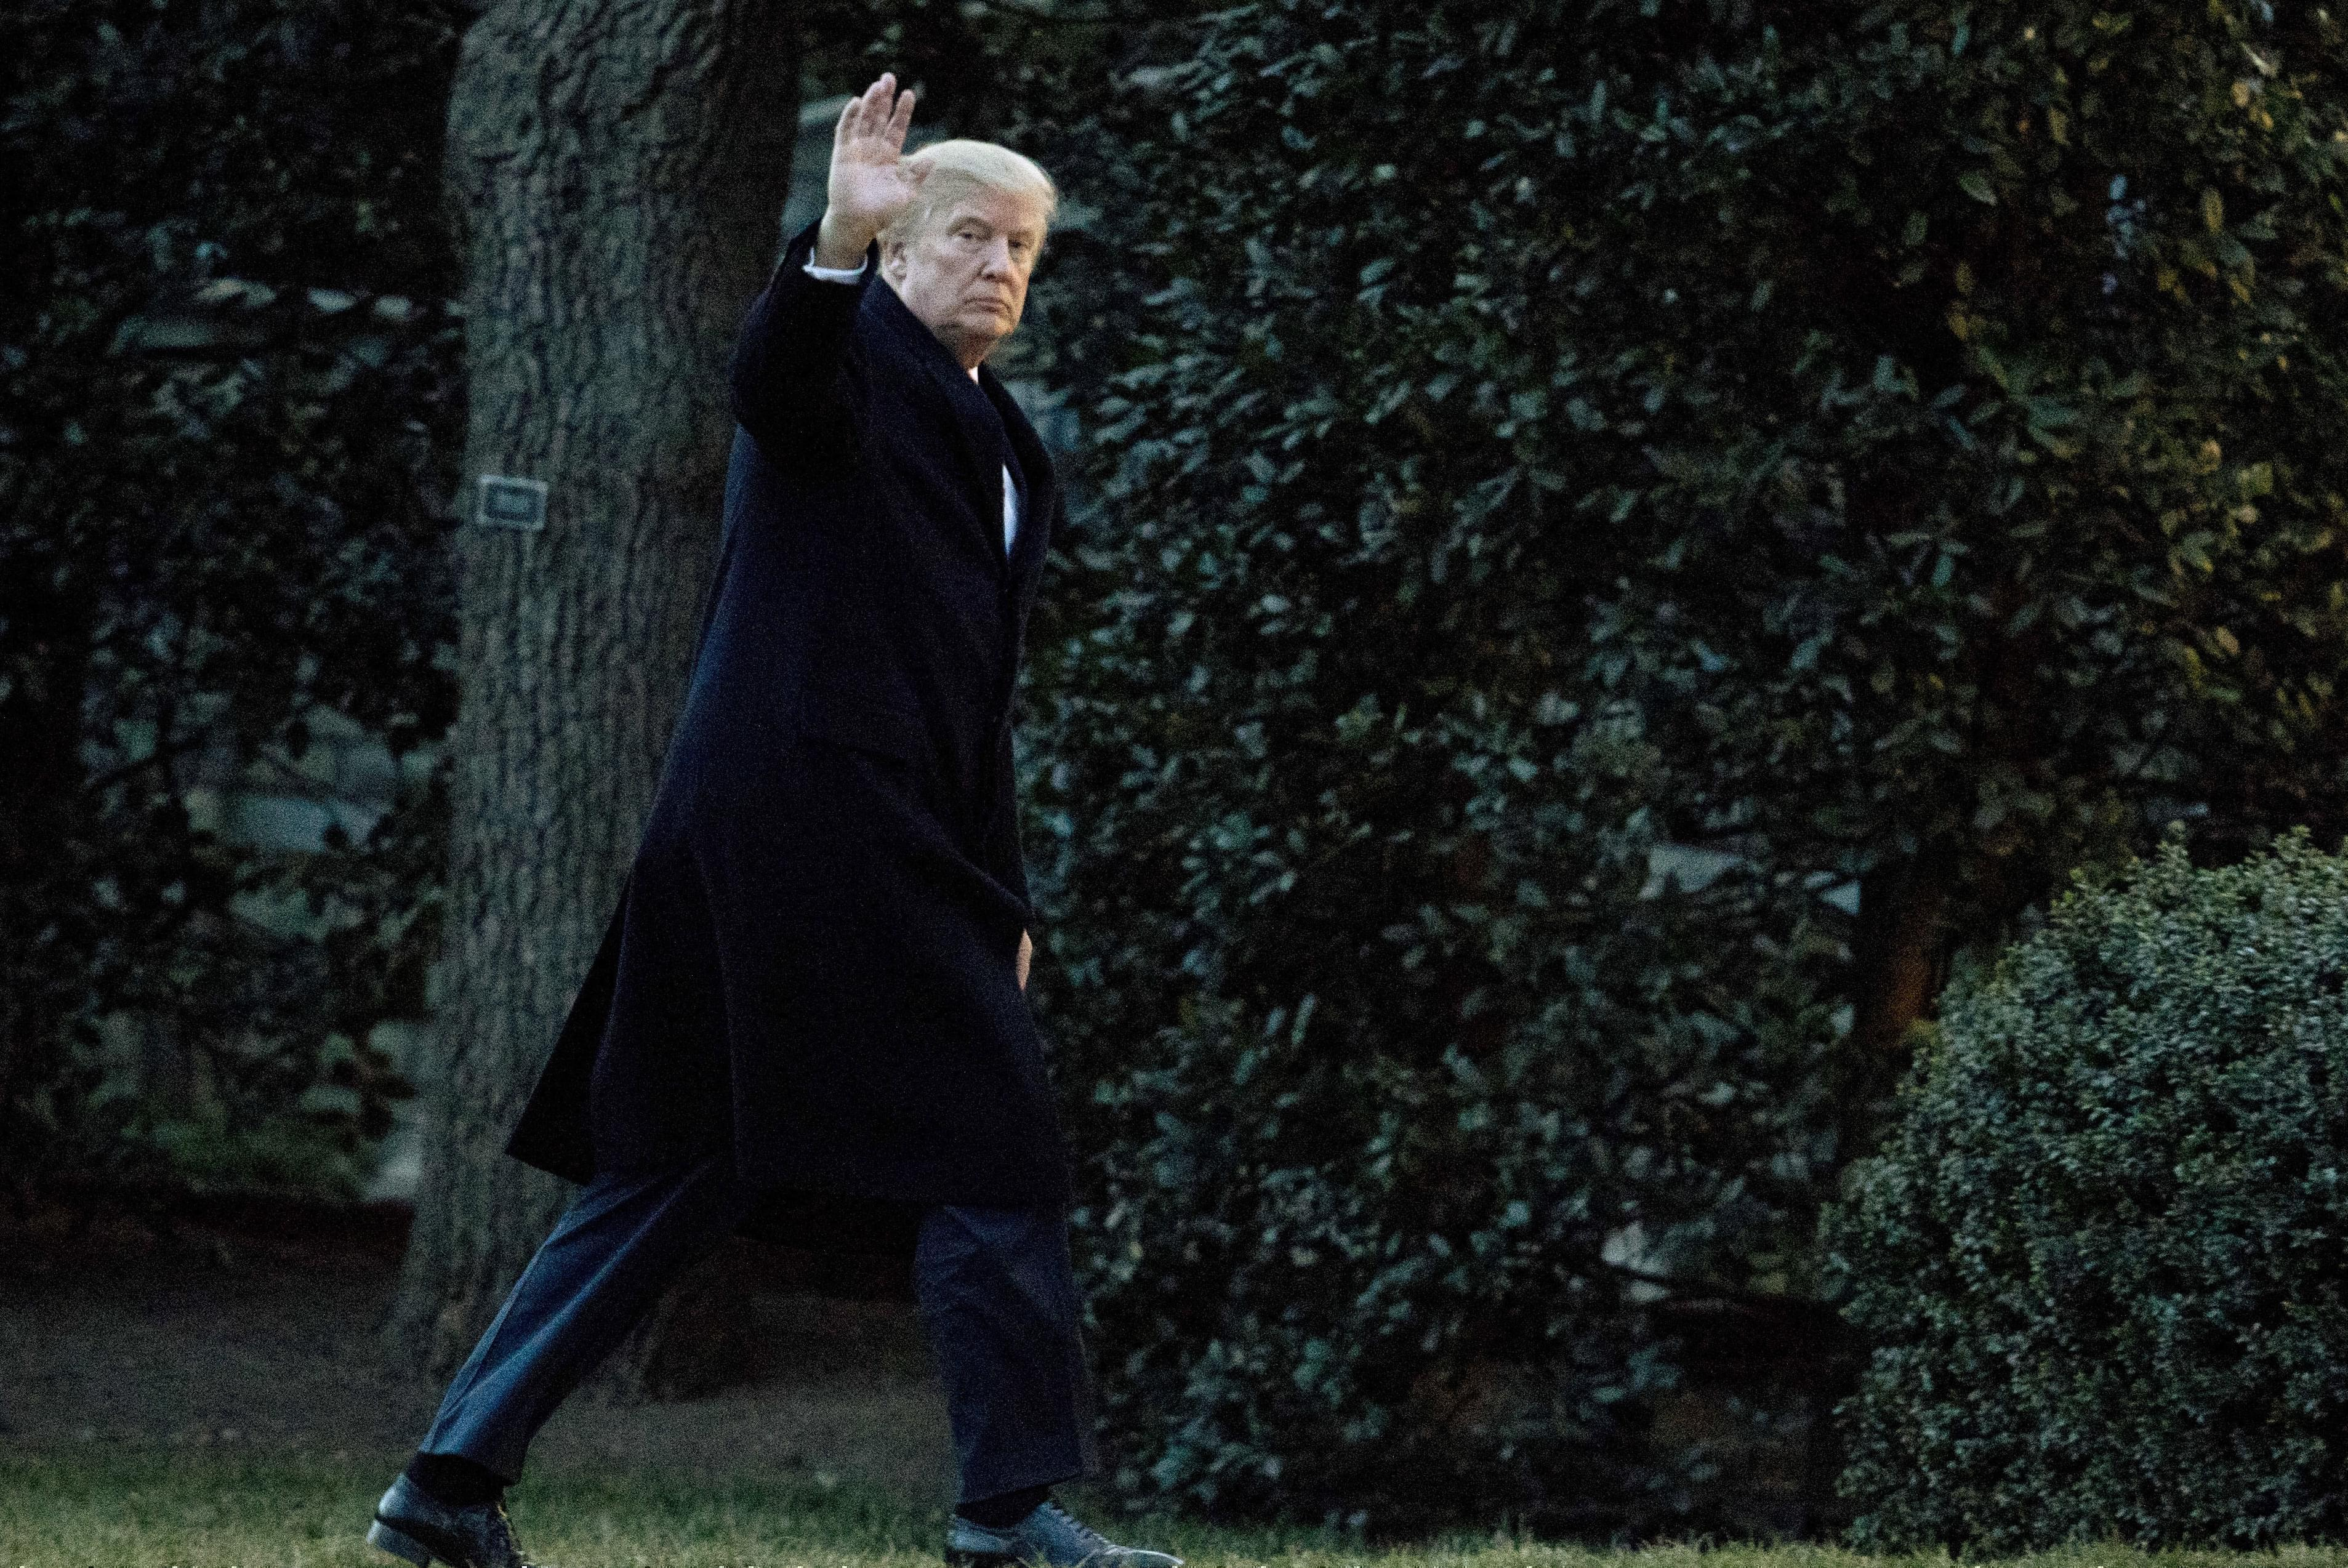 President Donald Trump waves as he arrives at the White House in Washington, Sunday, March 5, 2017, from a trip to Florida.